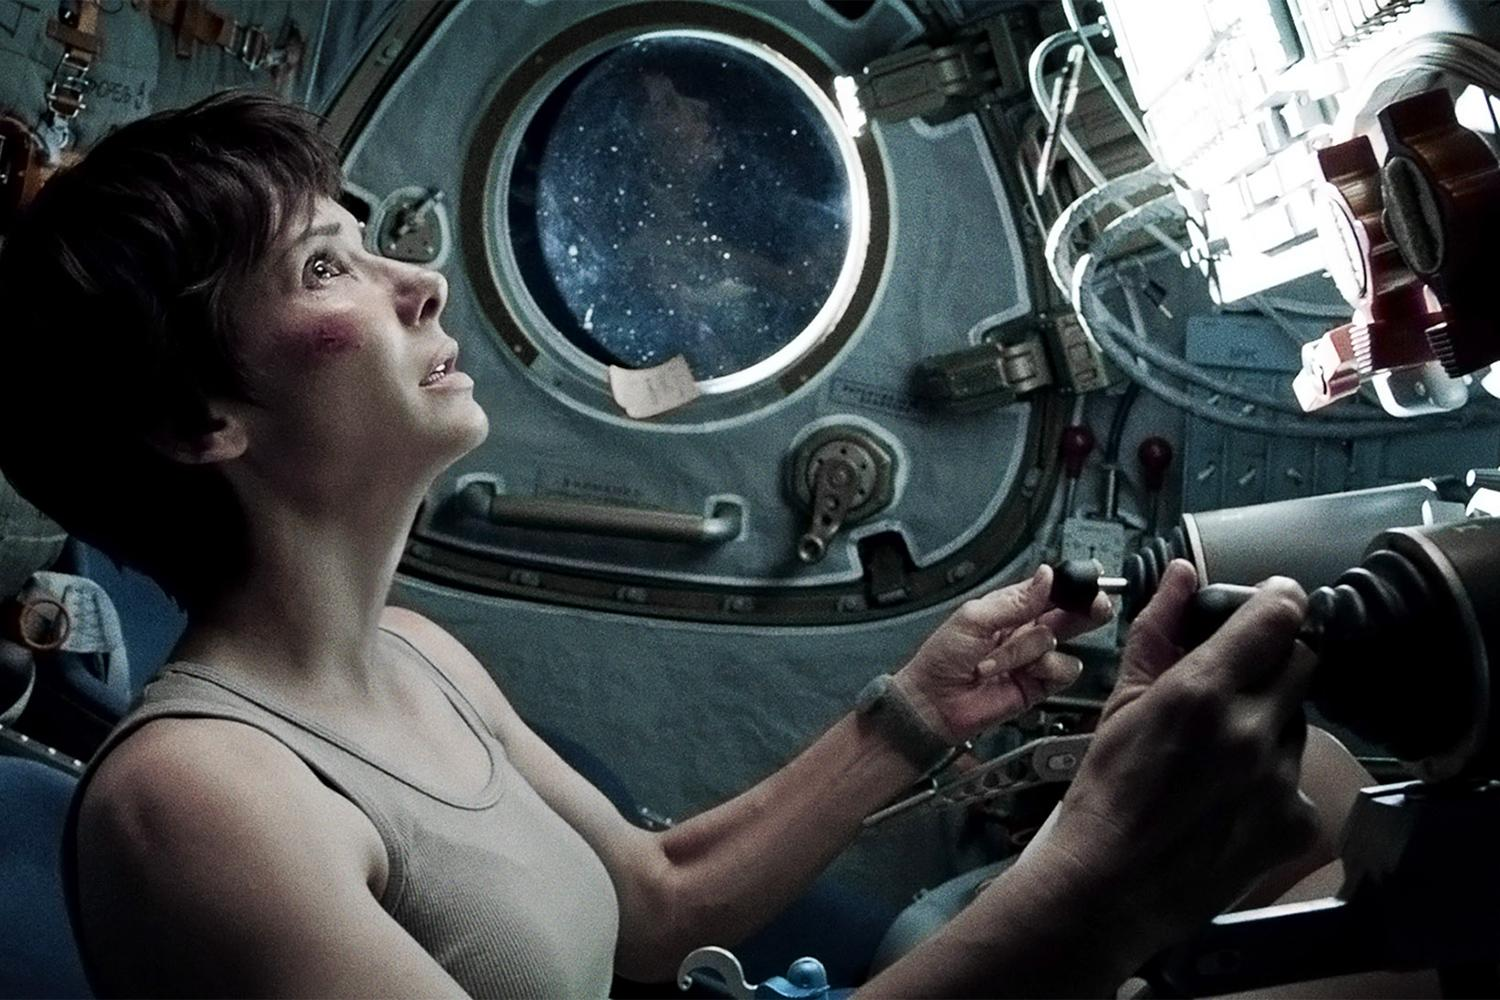 gravity-movie-review-sandra-bullock-ship.jpg